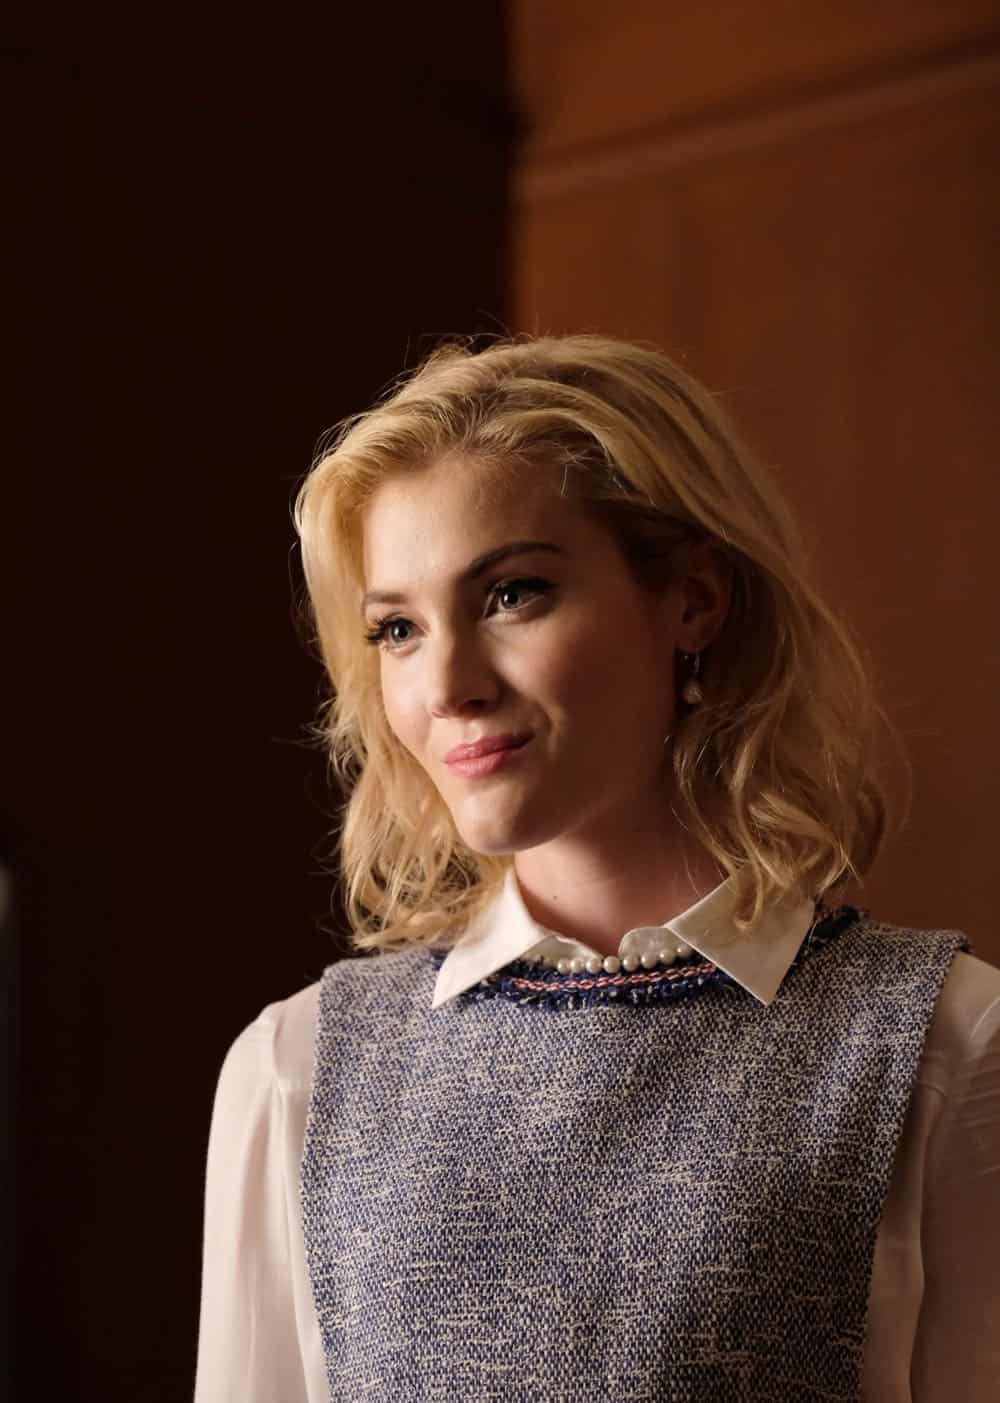 The Gifted Season 2 Episode 1 6